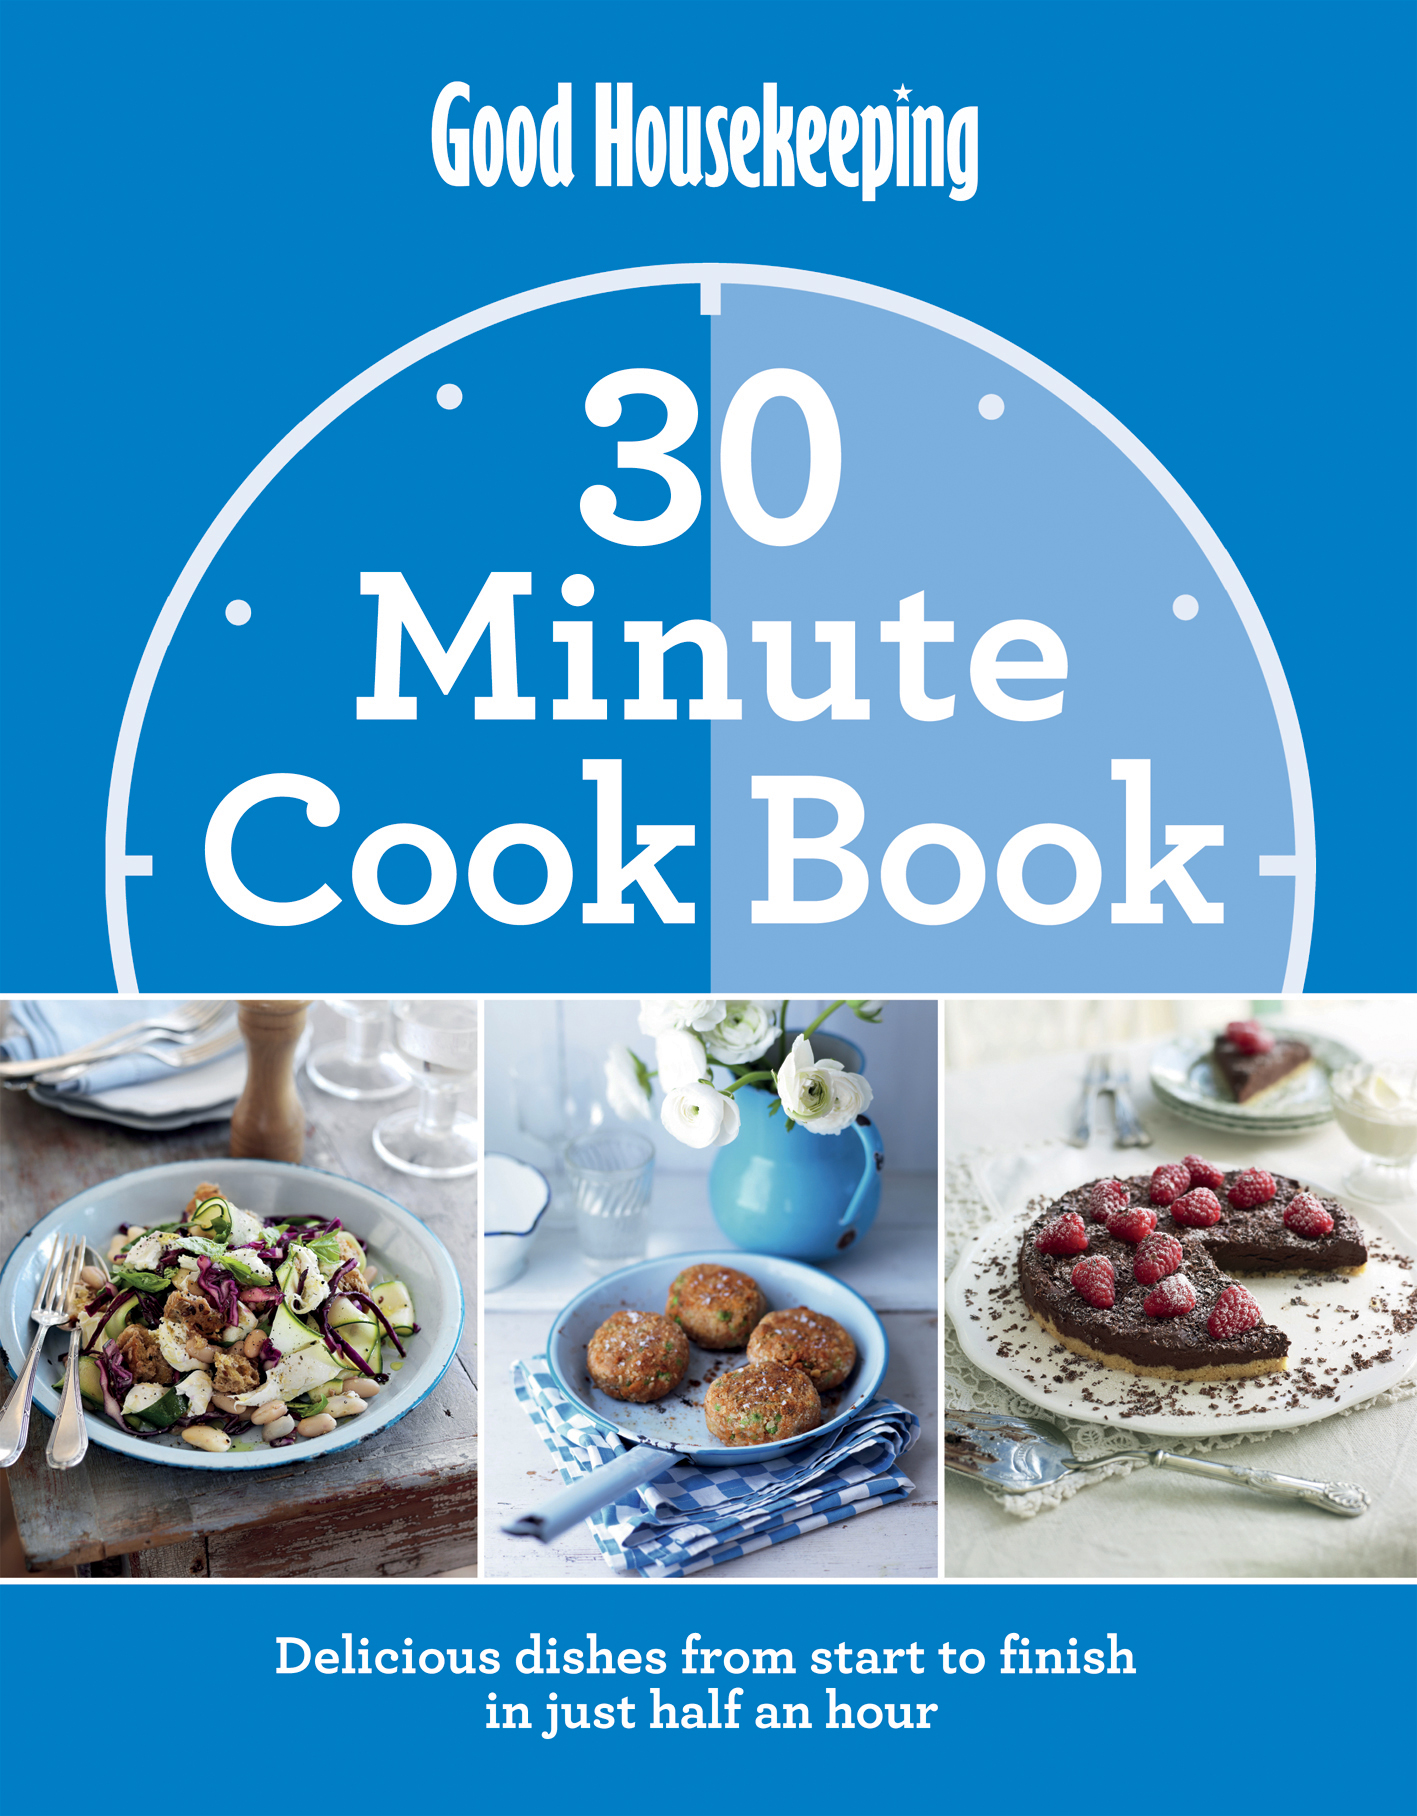 Good Housekeeping 30 Minute Cook Book WIGIG for TRADE